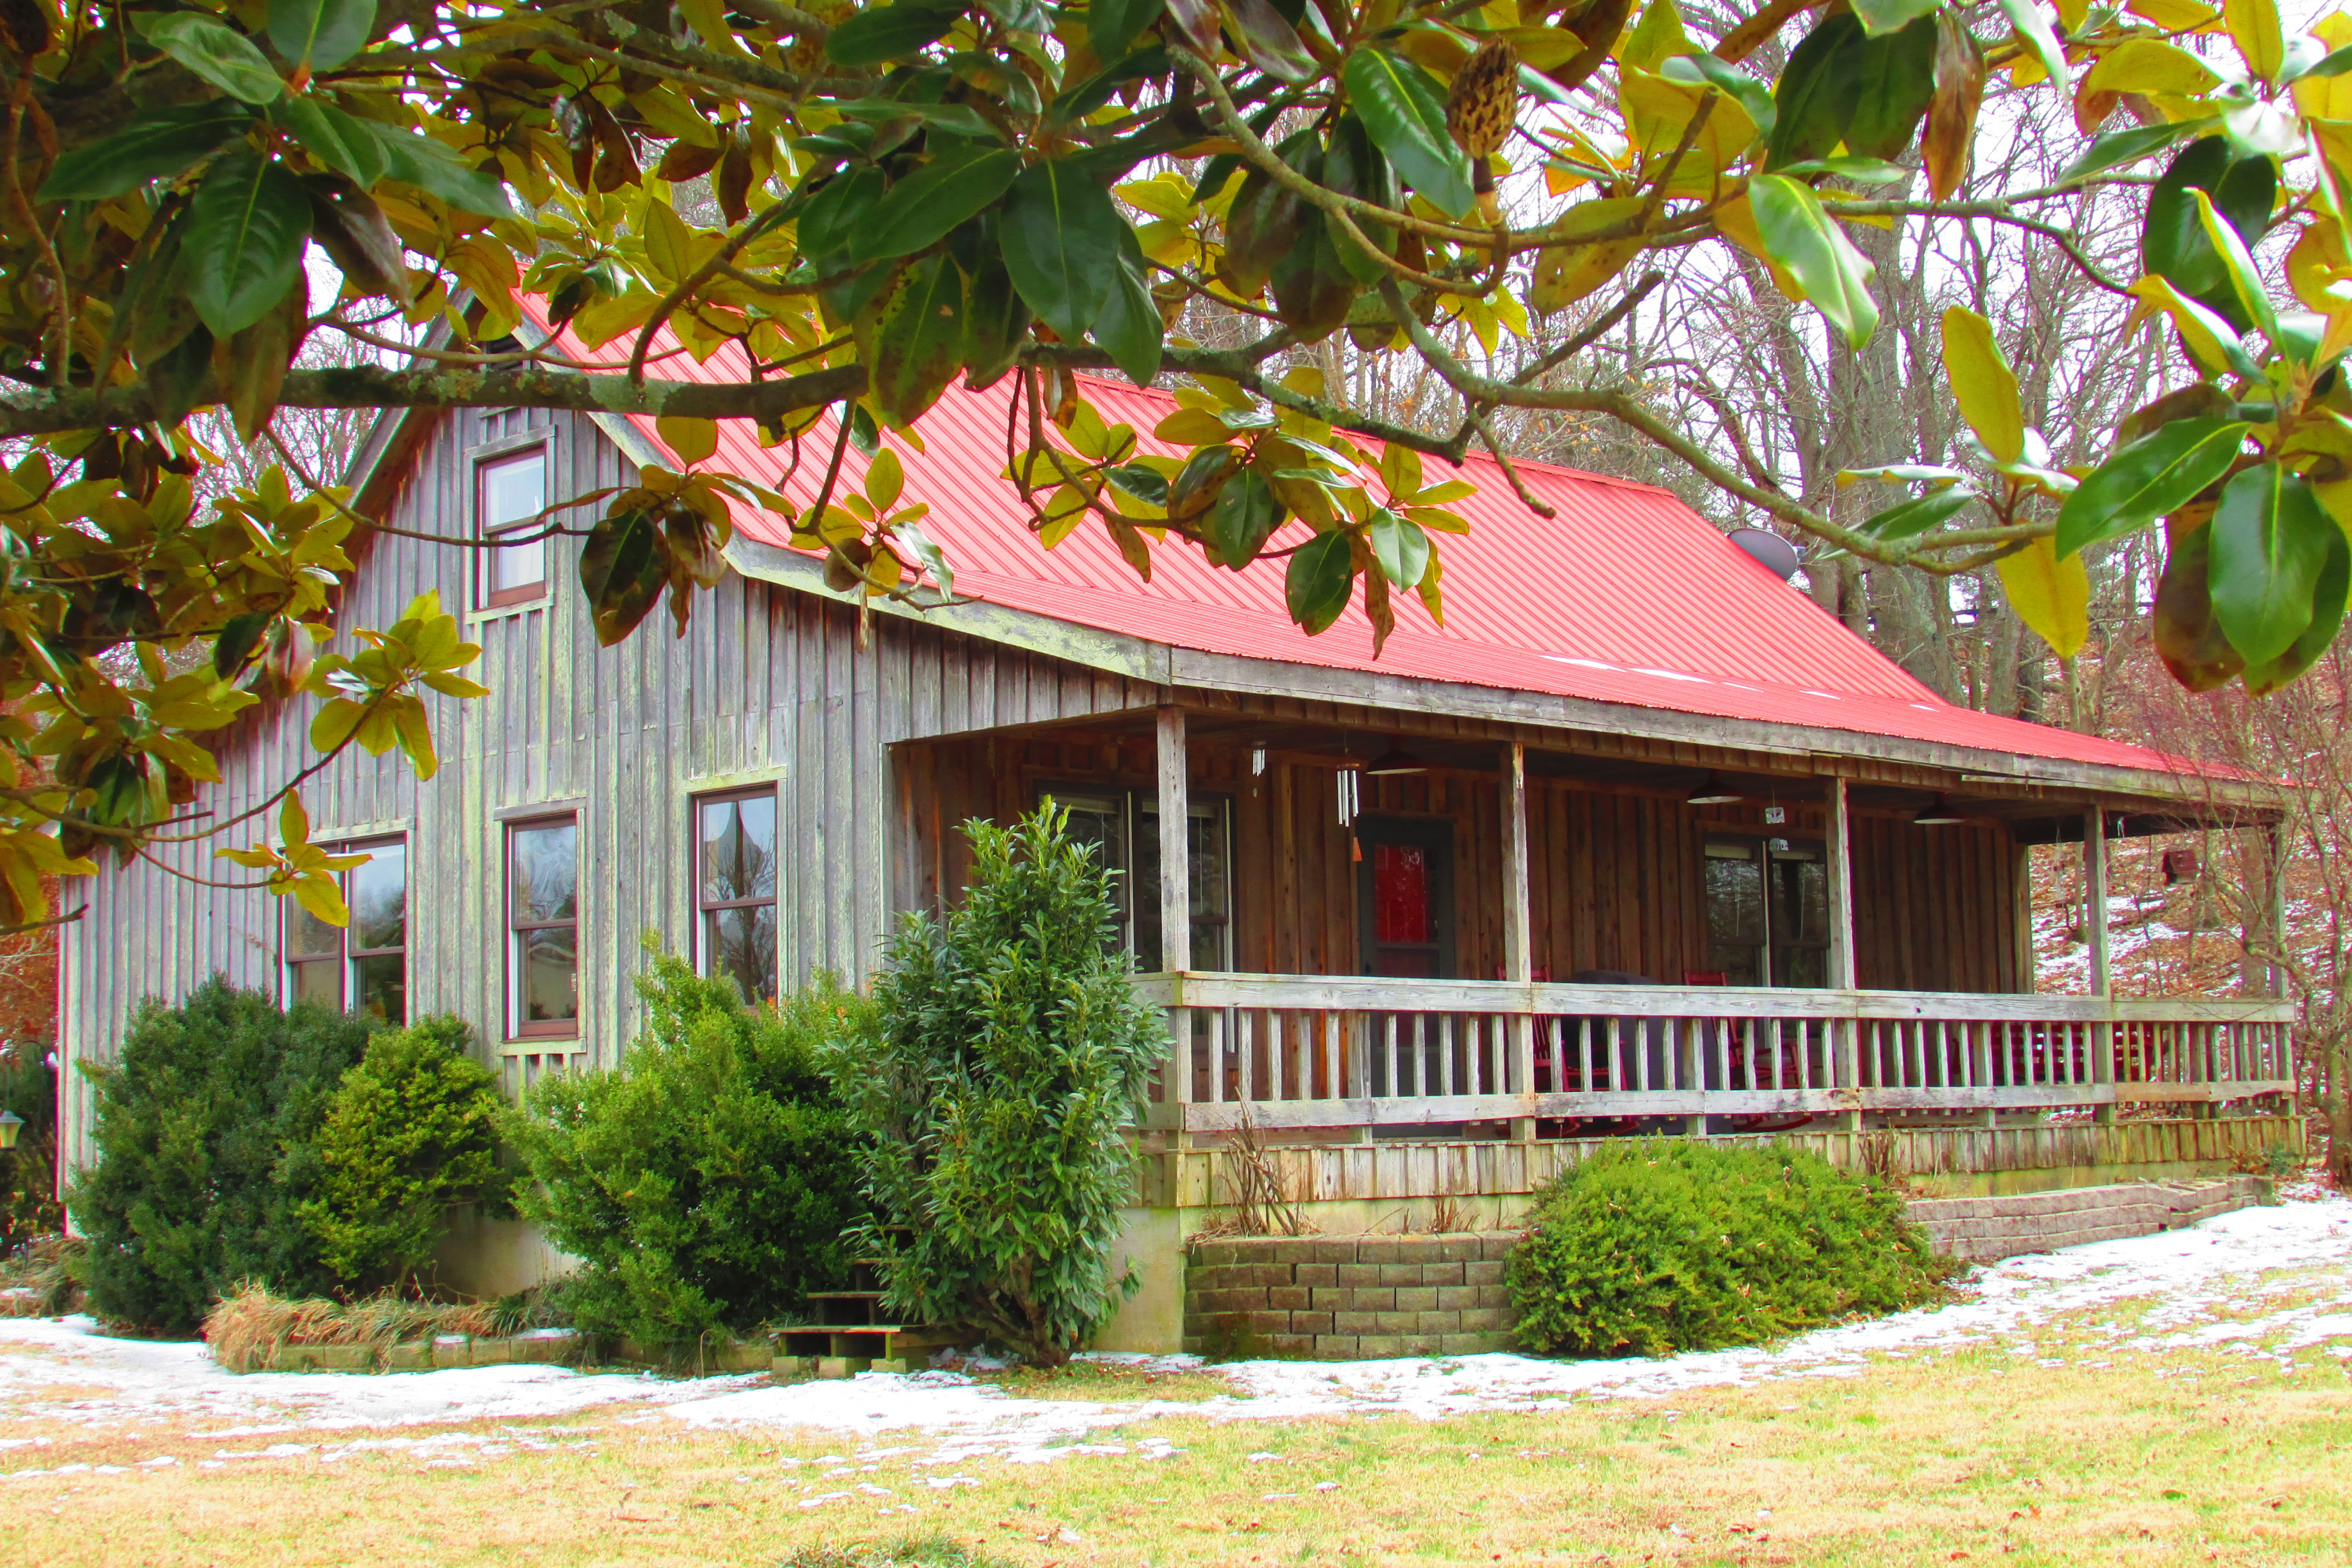 Cabin Style Home For Sale In Franklin Tennessee With Land